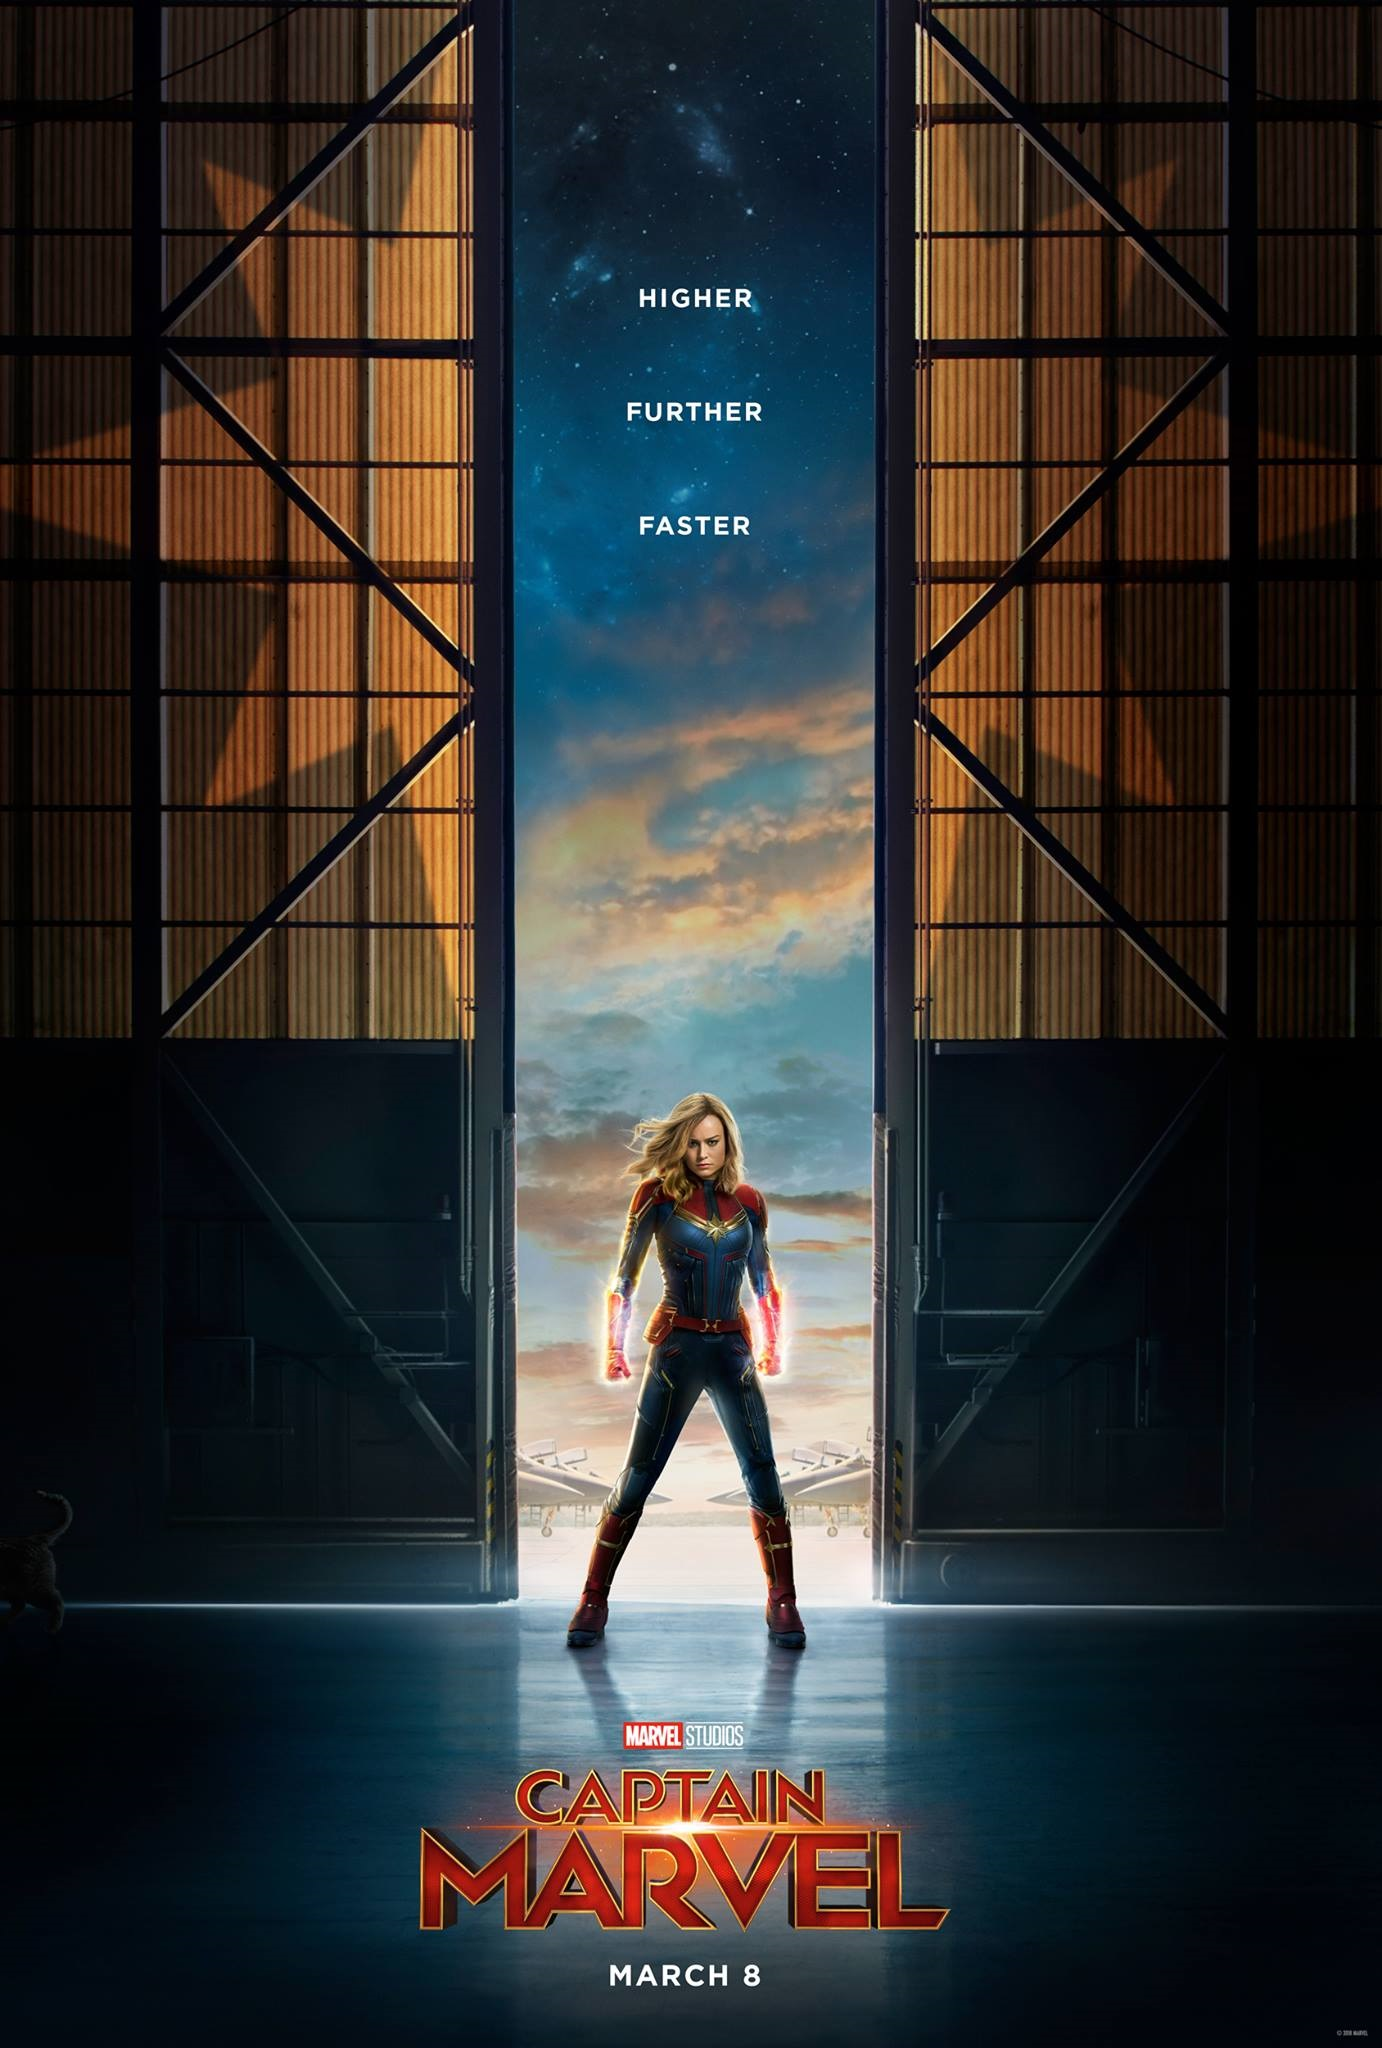 The first official poster for Captain Marvel